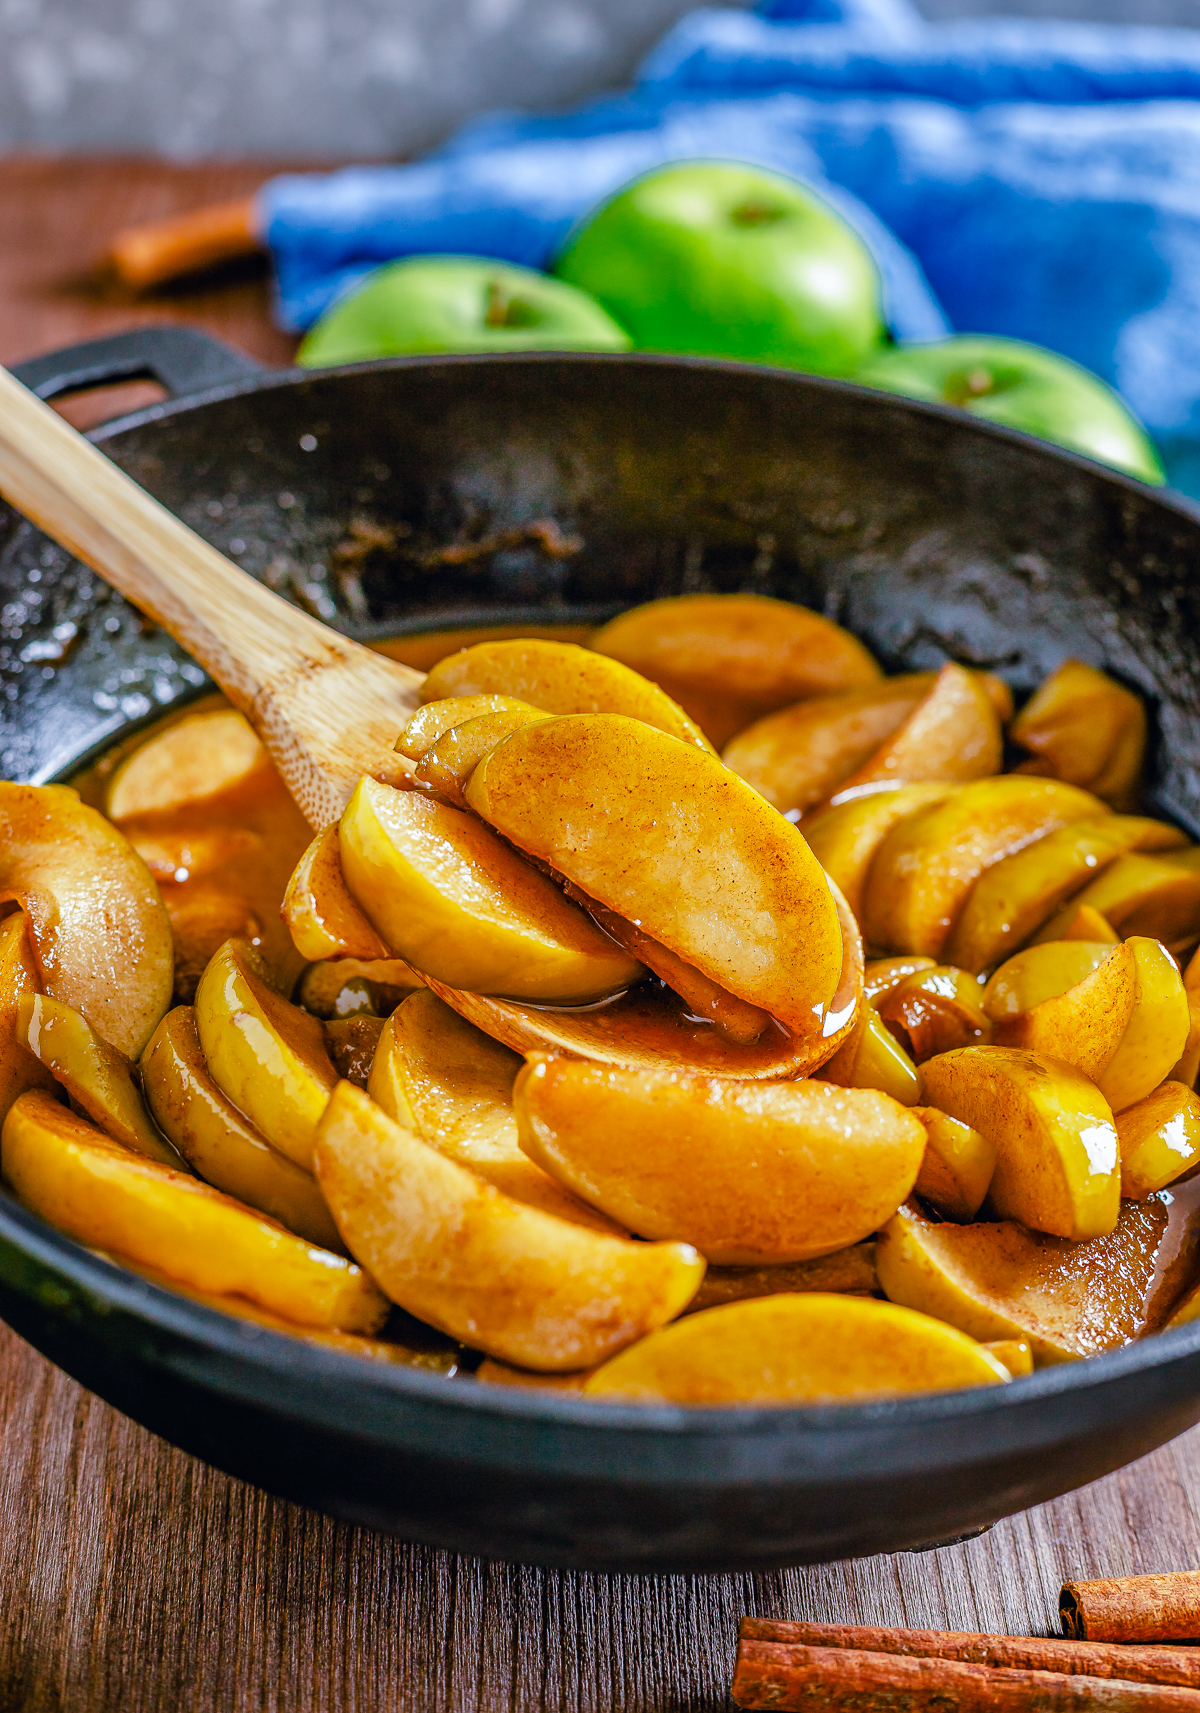 Fried Apples in skillet with wooden spoon.